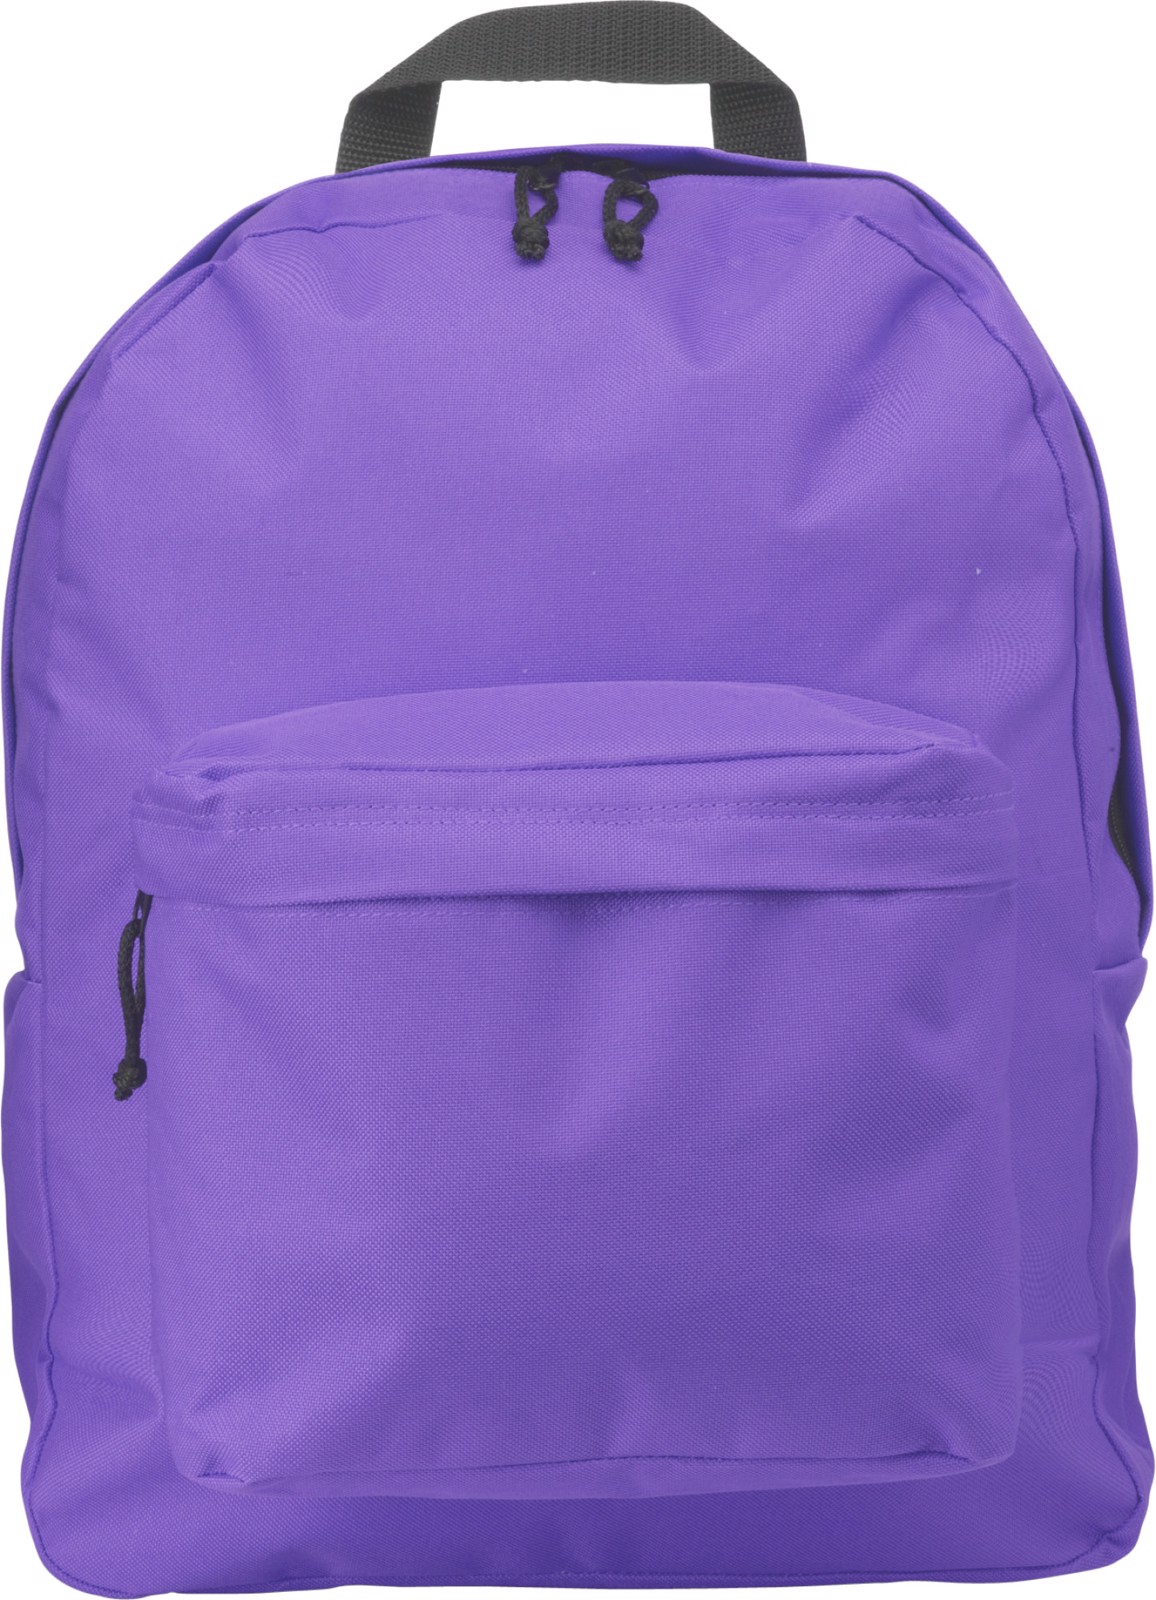 Polyester (600D) backpack - Purple